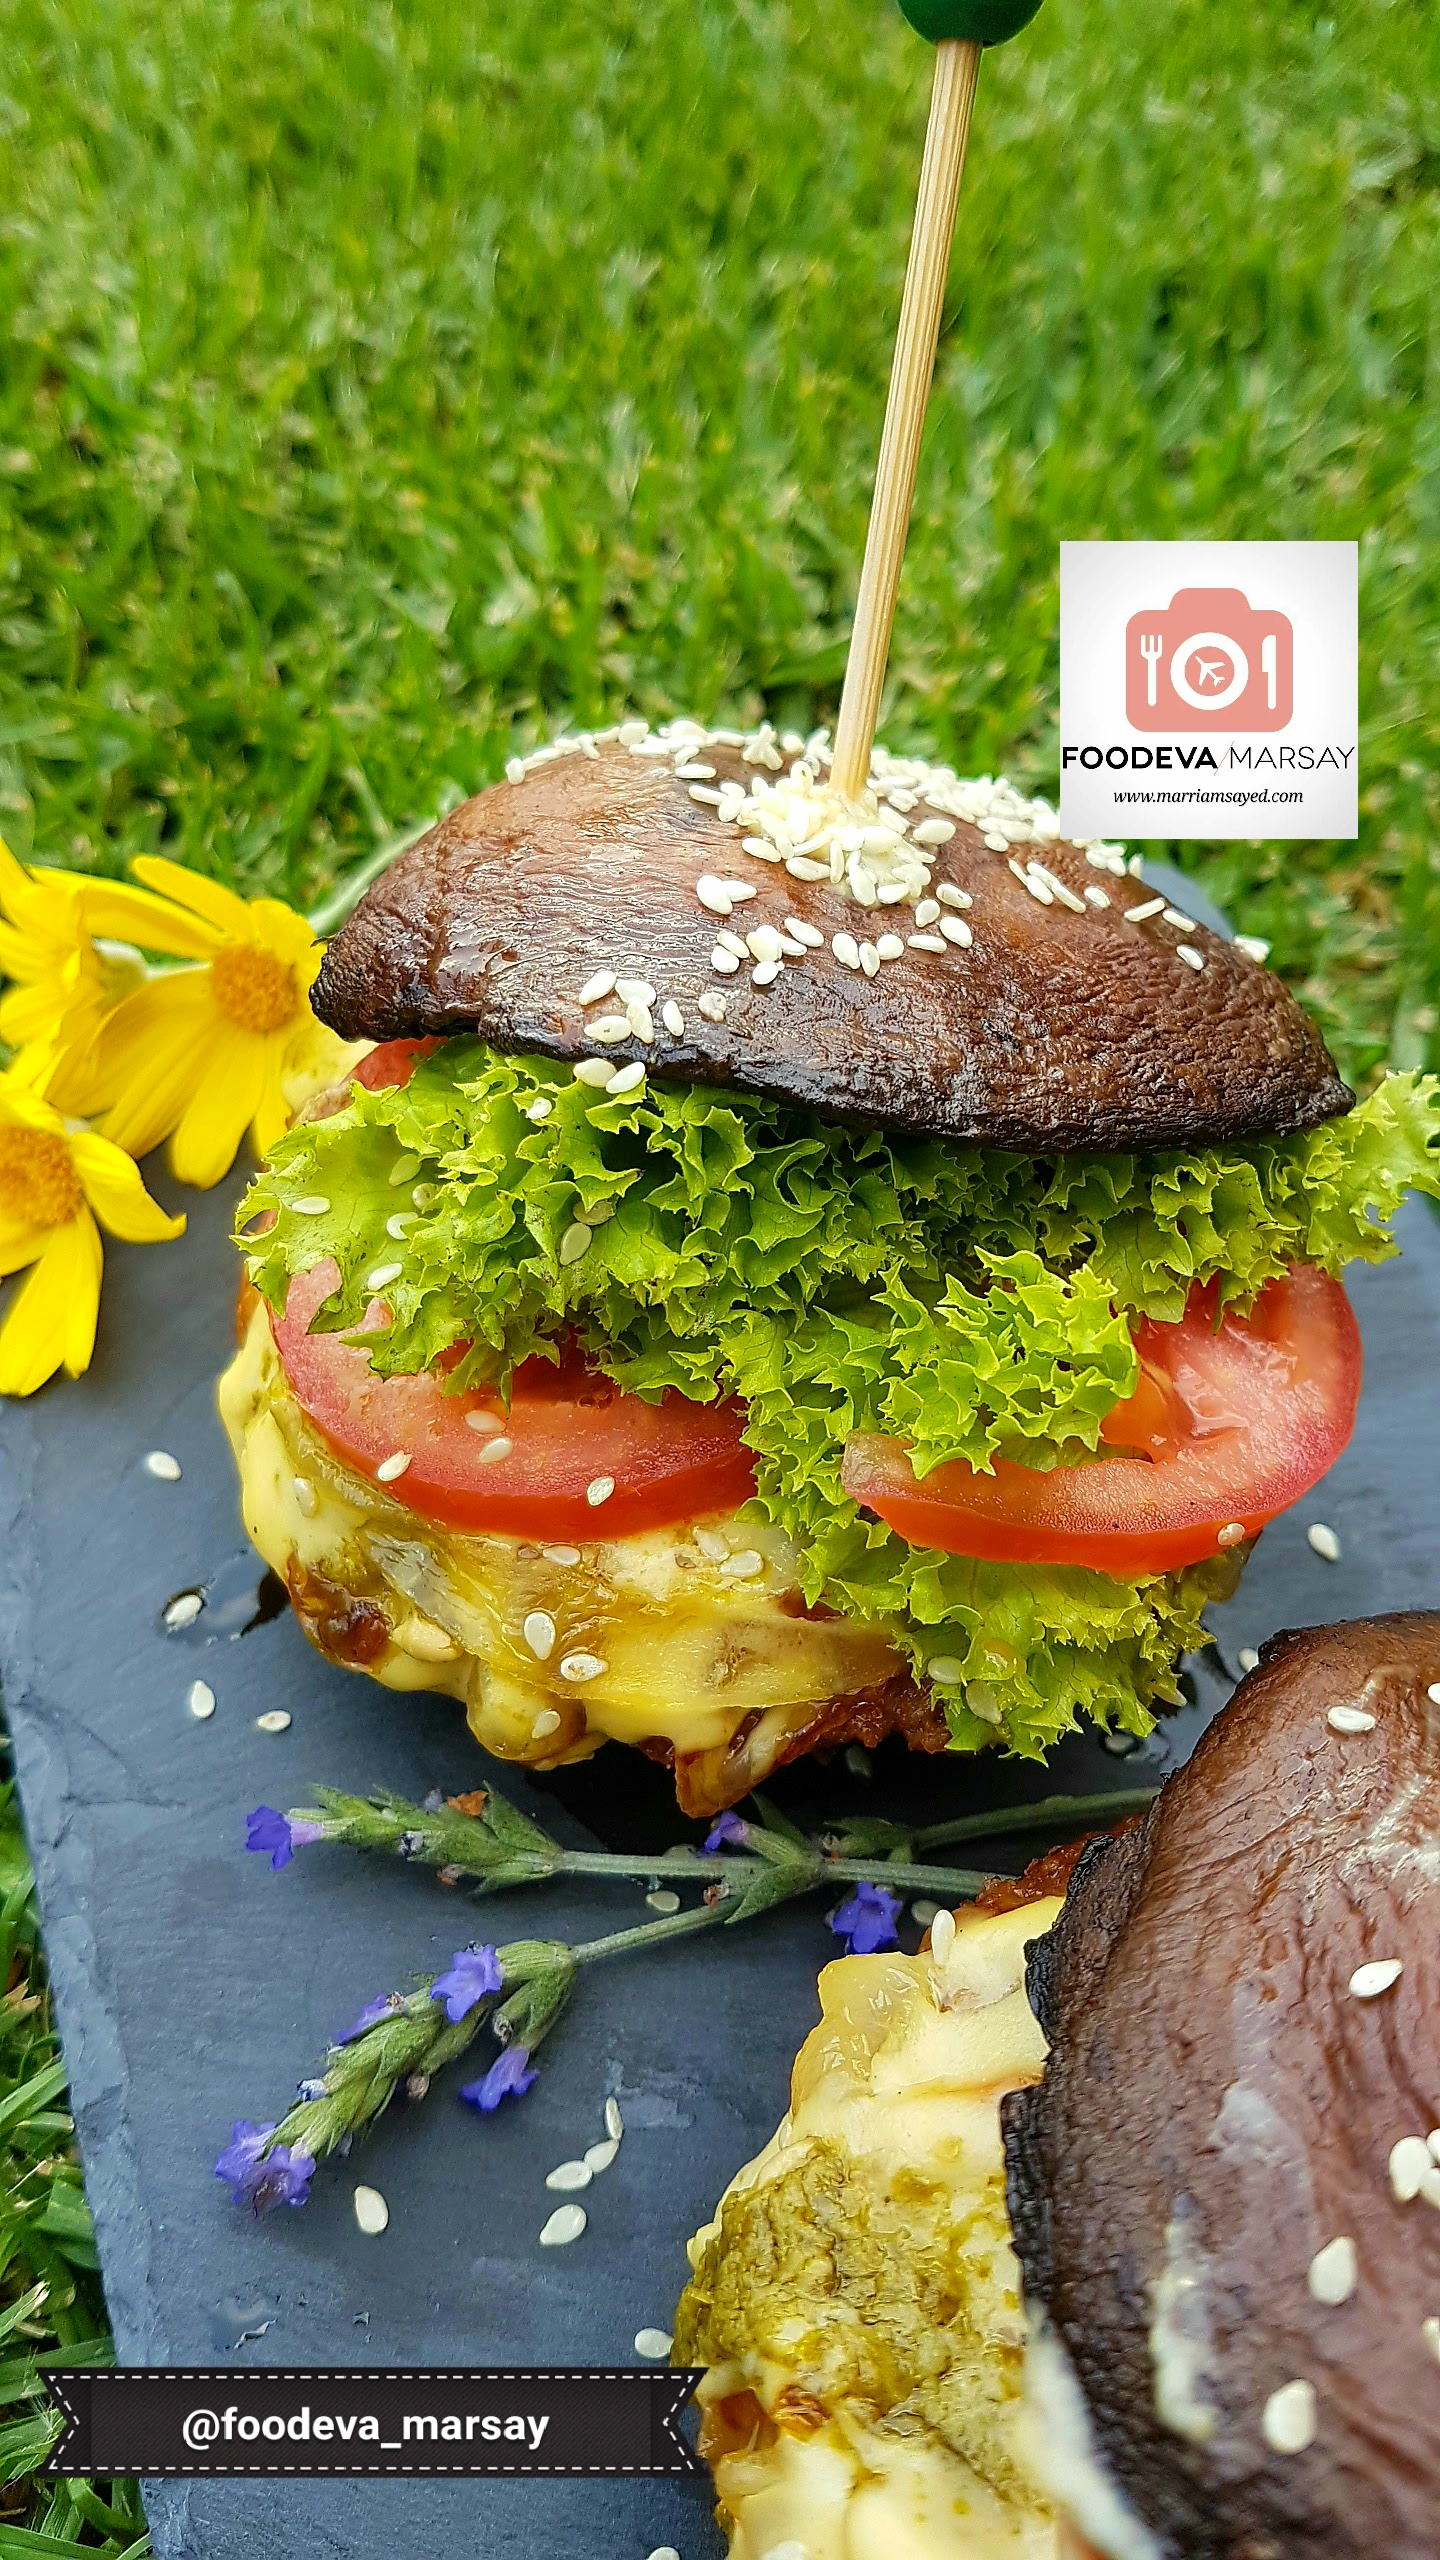 Bun Less Burger Using Portobello Mushrooms Foodeva Marsay